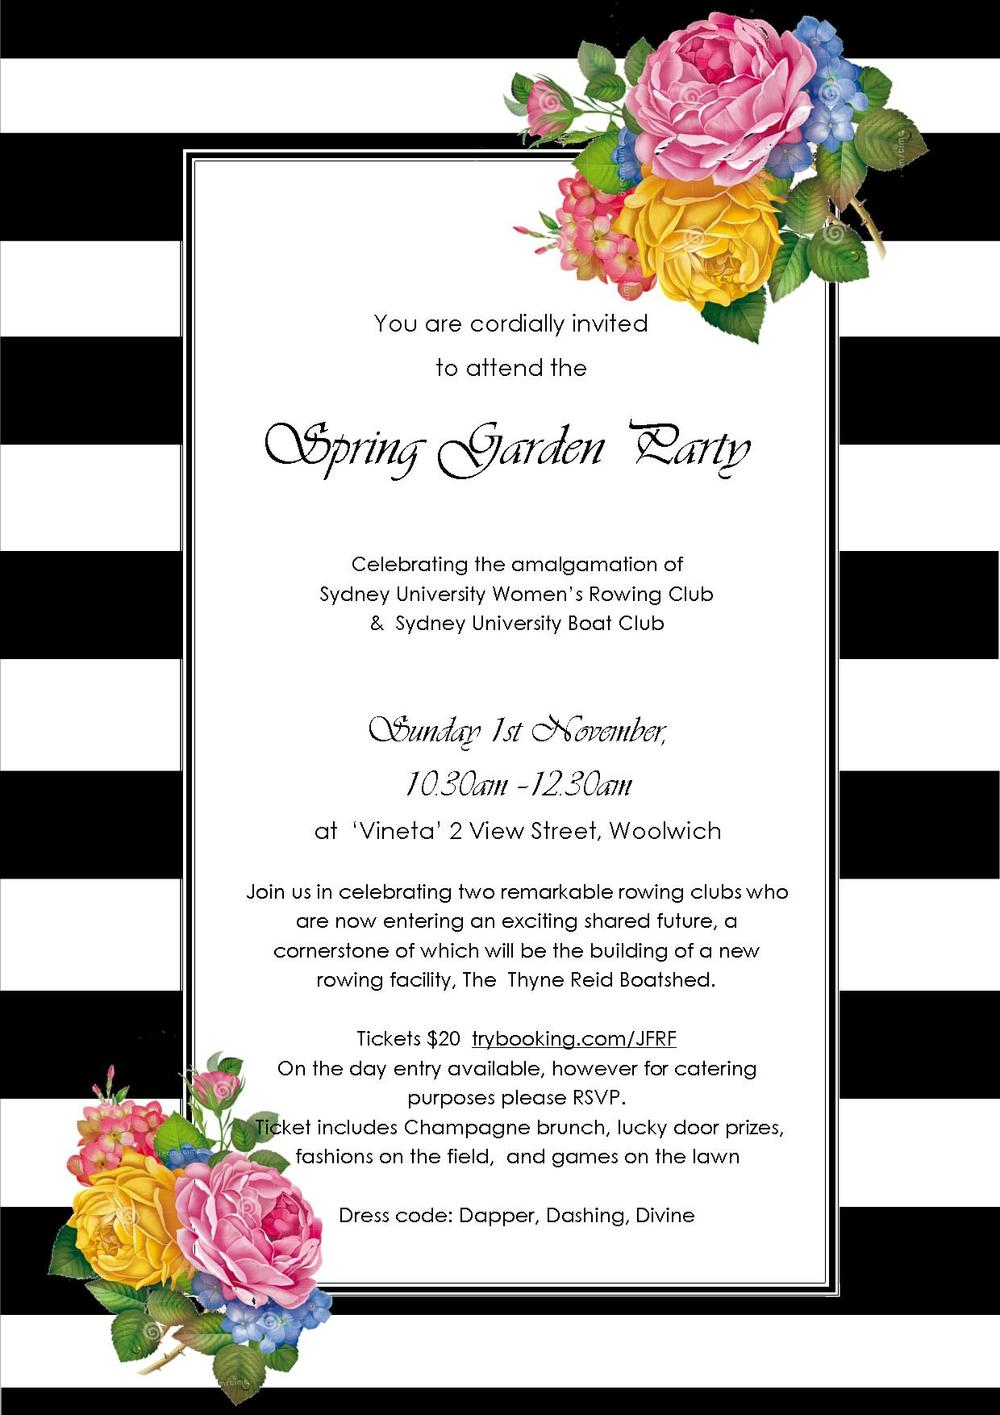 Spring-Garden-Party-Invitation-and-Ticket-info.jpg